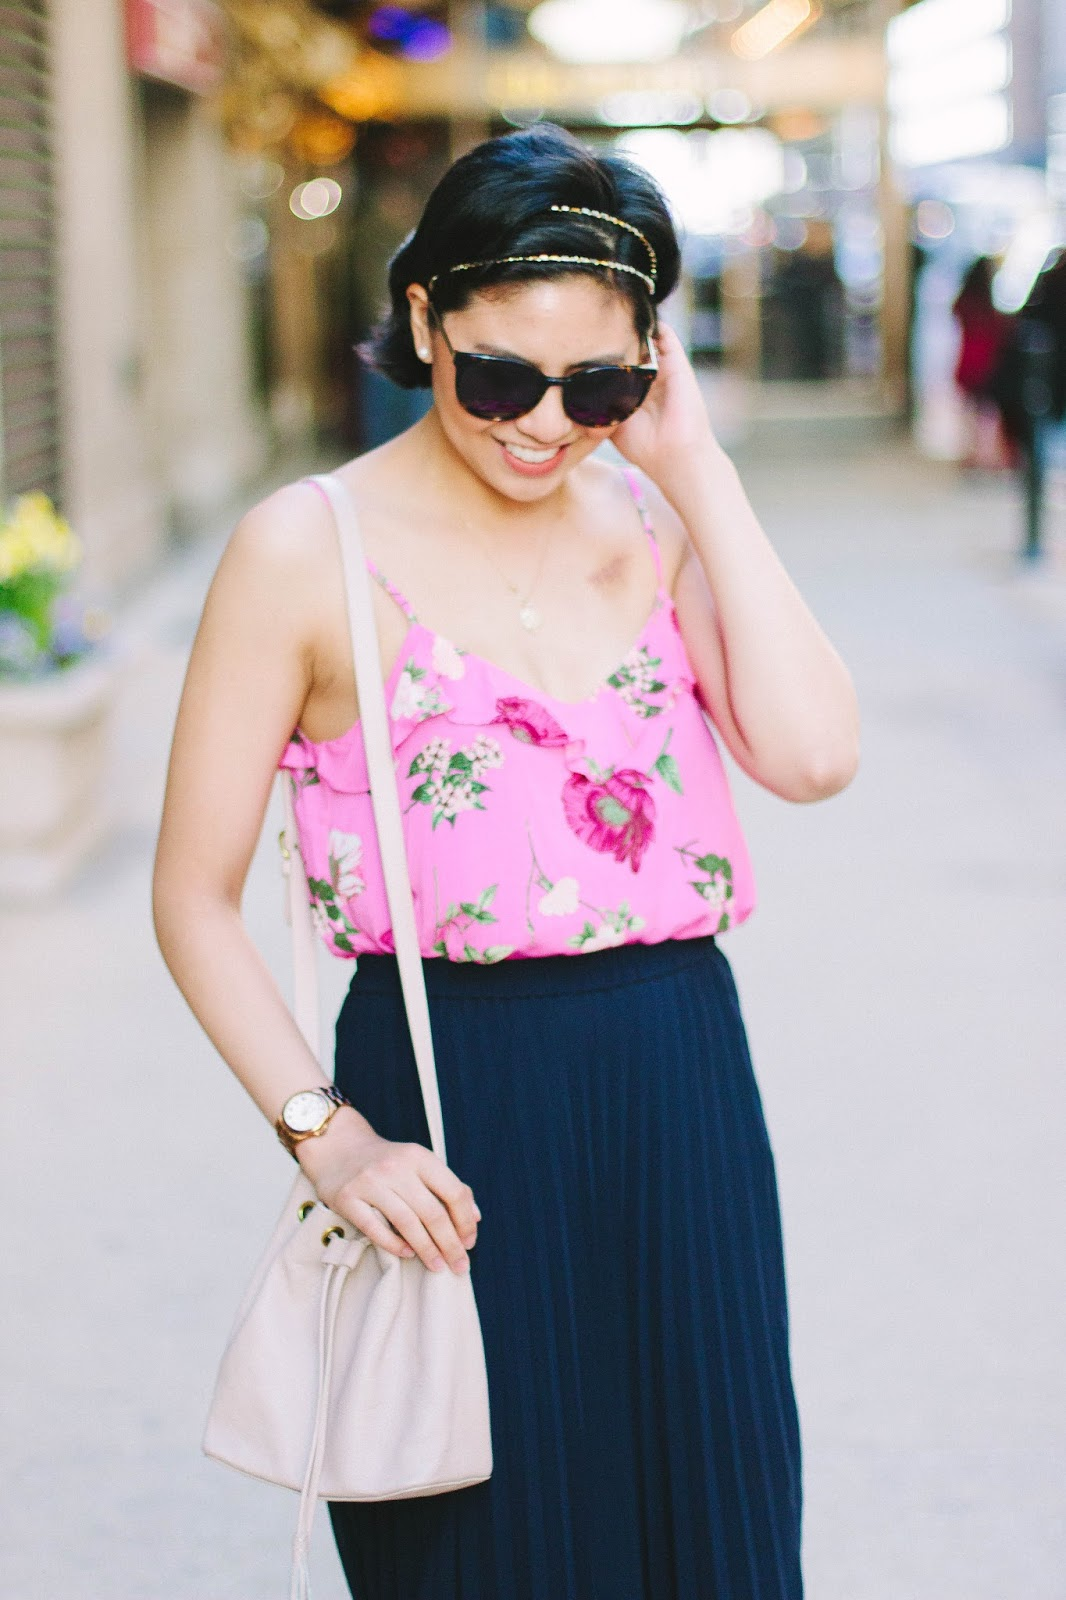 Wearing floral prints for Spring and Summer